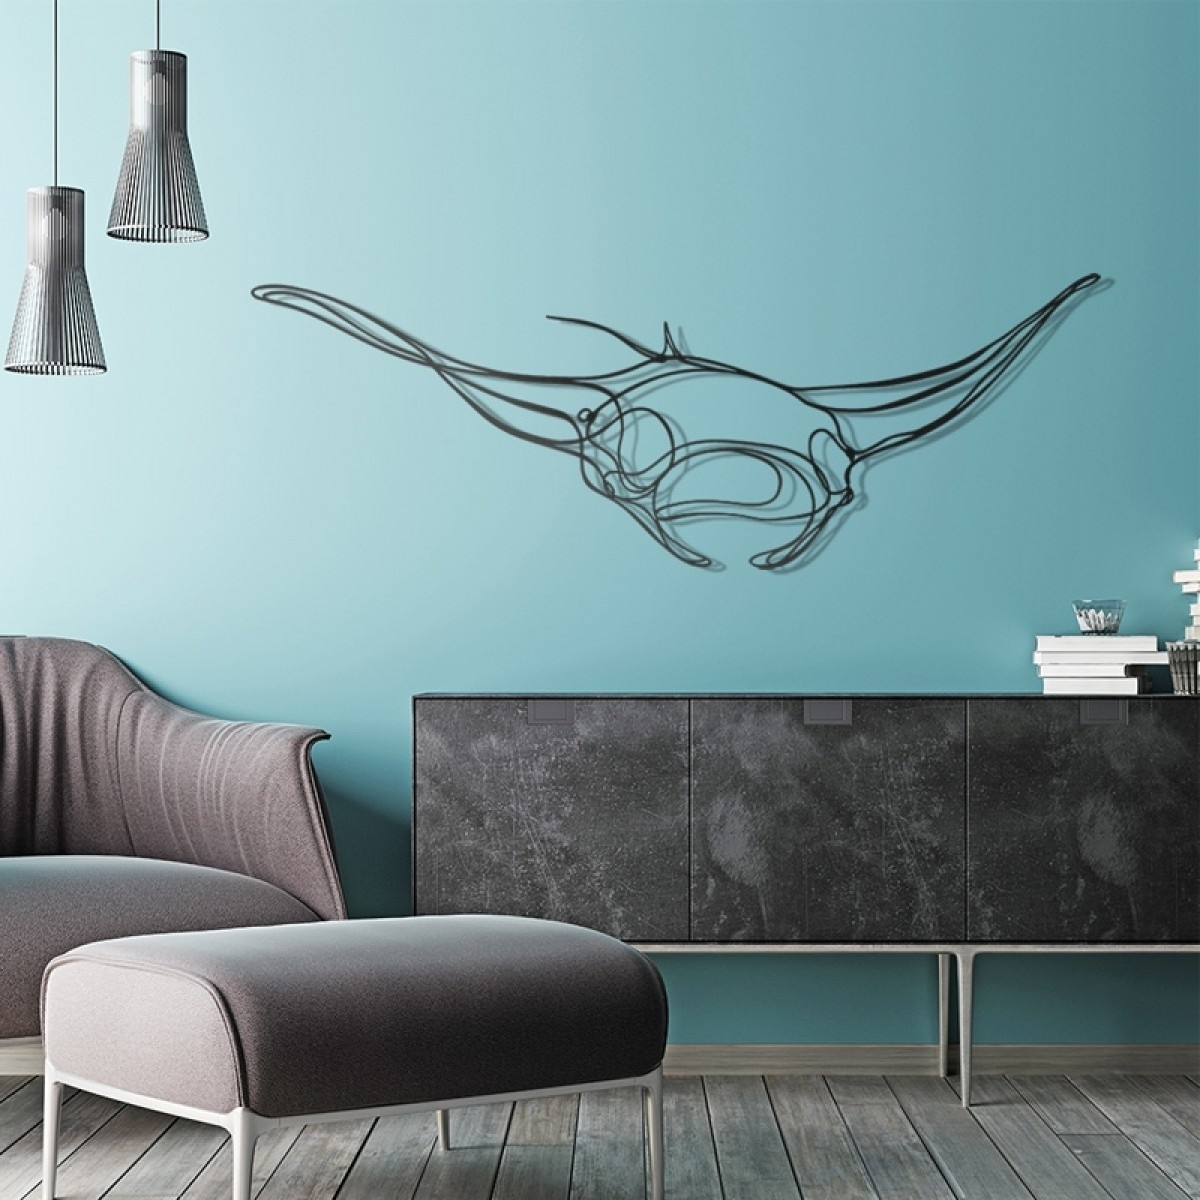 Most Popular Vidella 3D Wall Art Regarding Stunning Wall Art 3D Images – Joshkrajcik – Joshkrajcik (View 7 of 15)